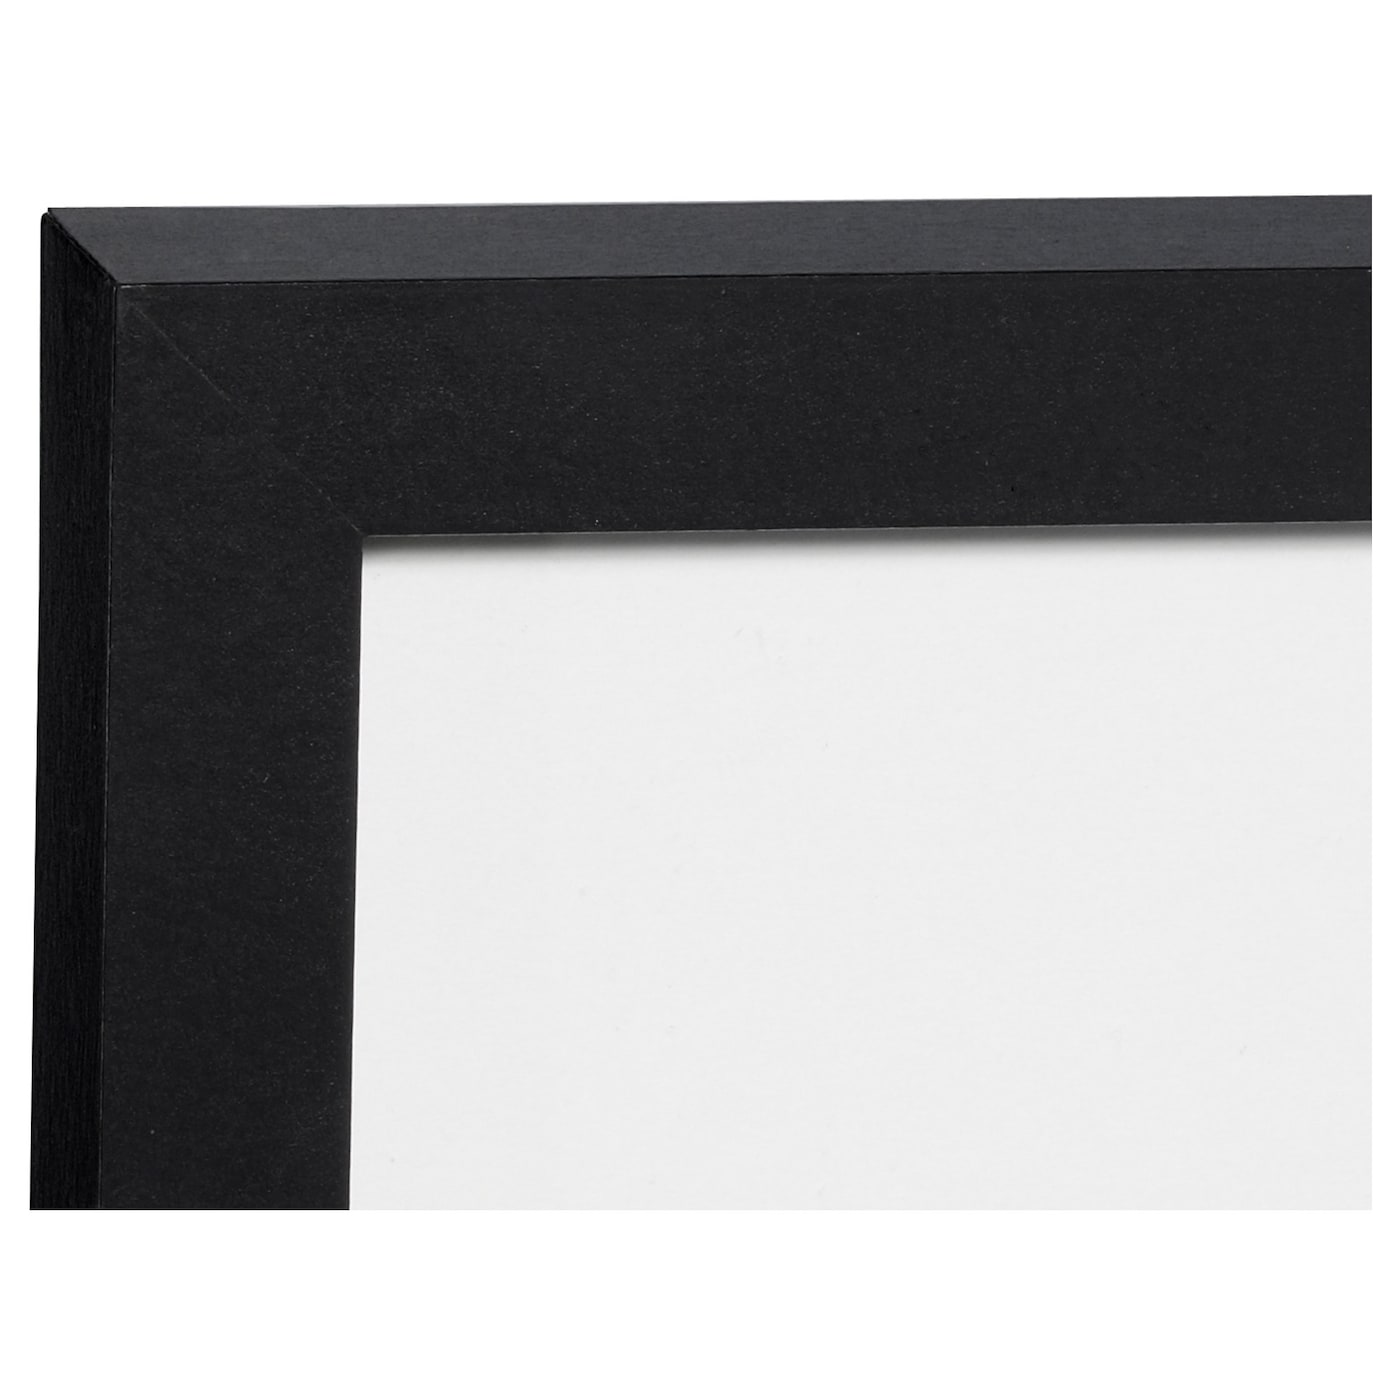 Ribba frame black 30x40 cm ikea ikea ribba frame fits a4 size pictures if used with the mount jeuxipadfo Choice Image